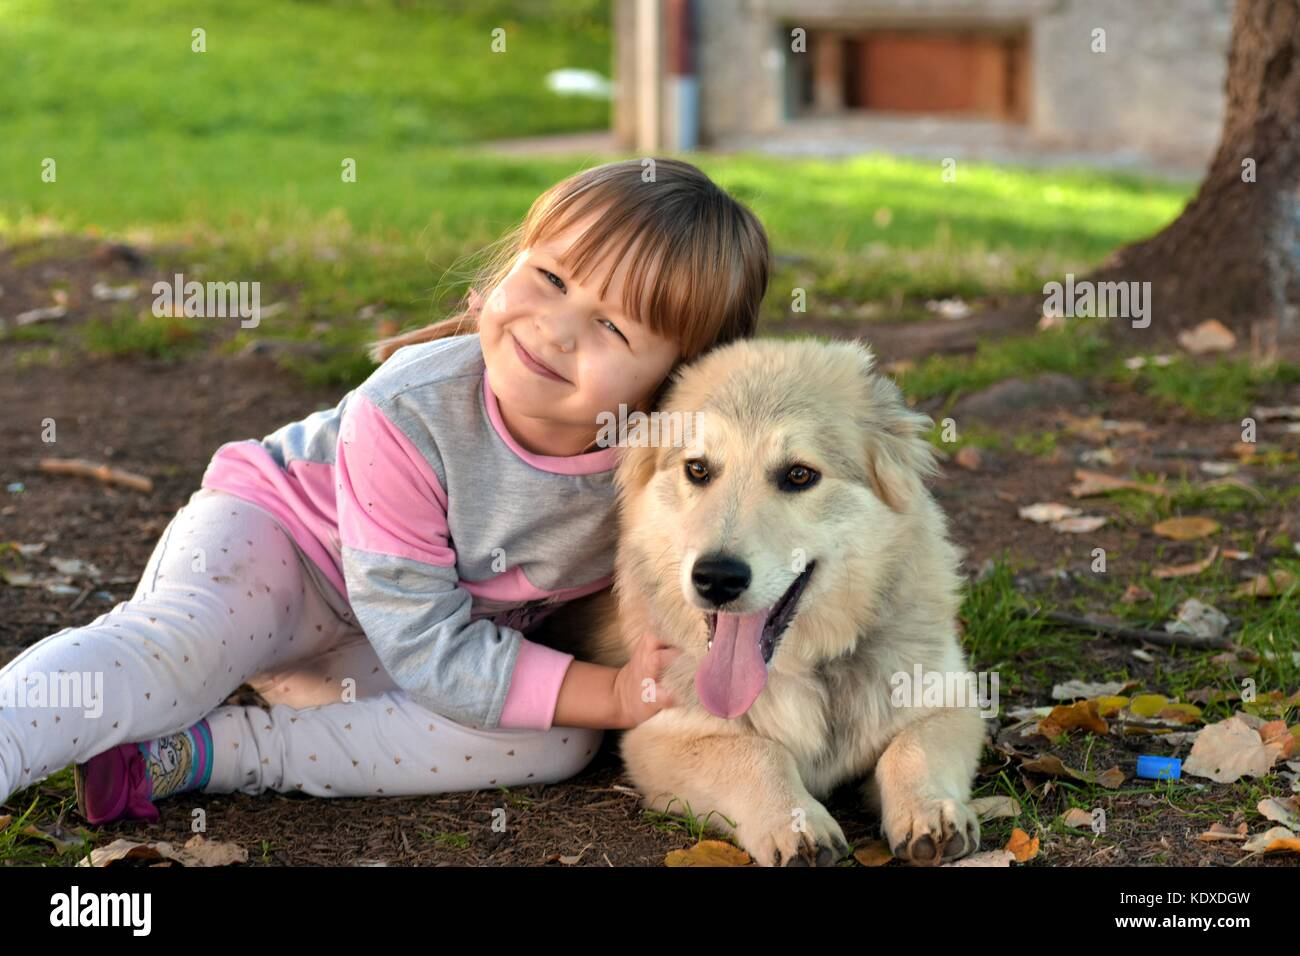 Portrait of a young blond girl child cuddling white puppy outdoors in the park Stock Photo